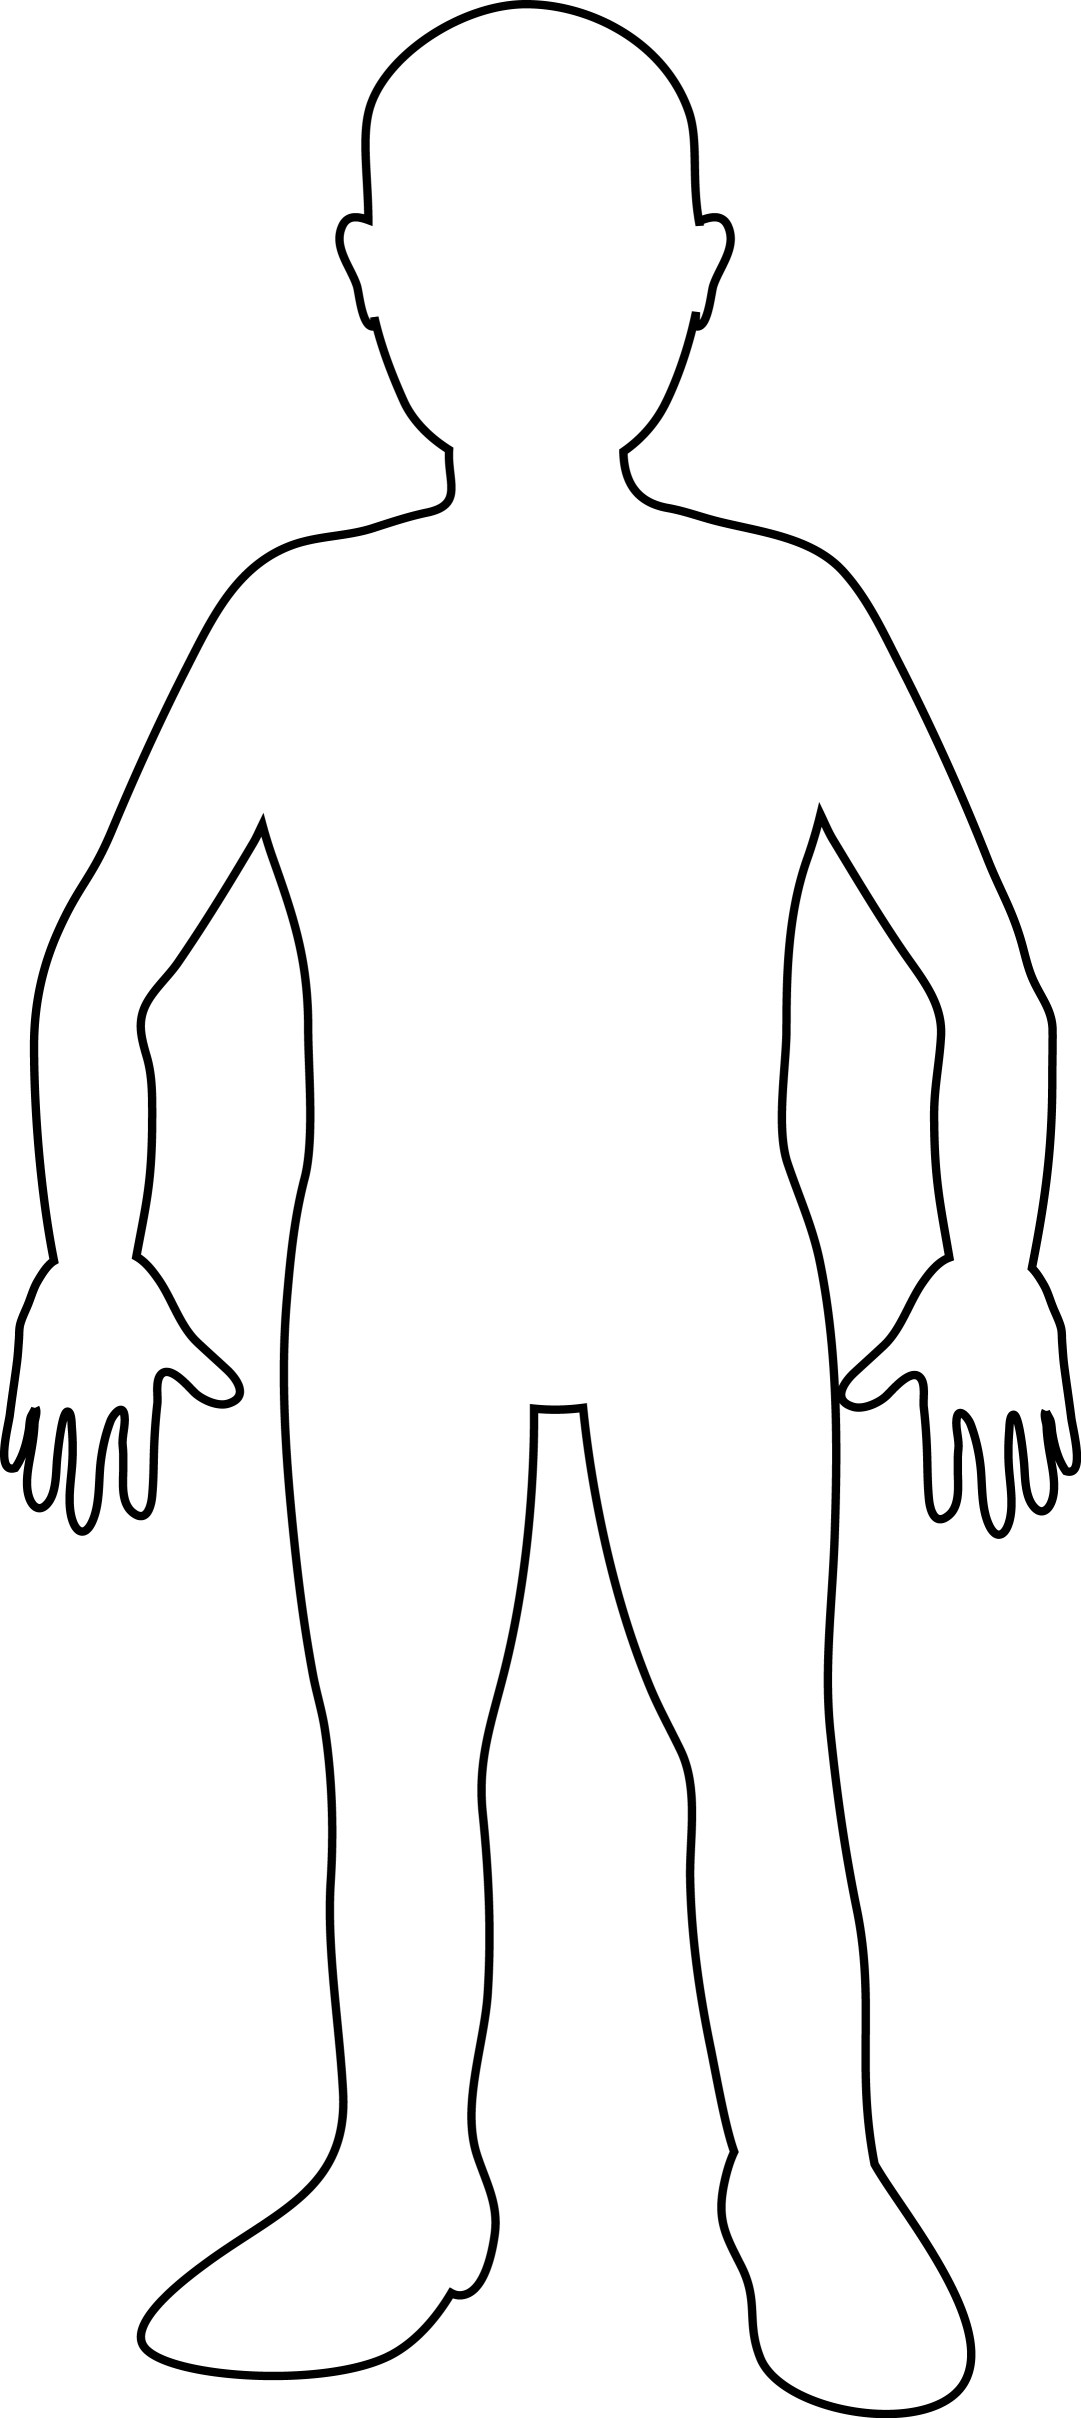 Body Template For Kids